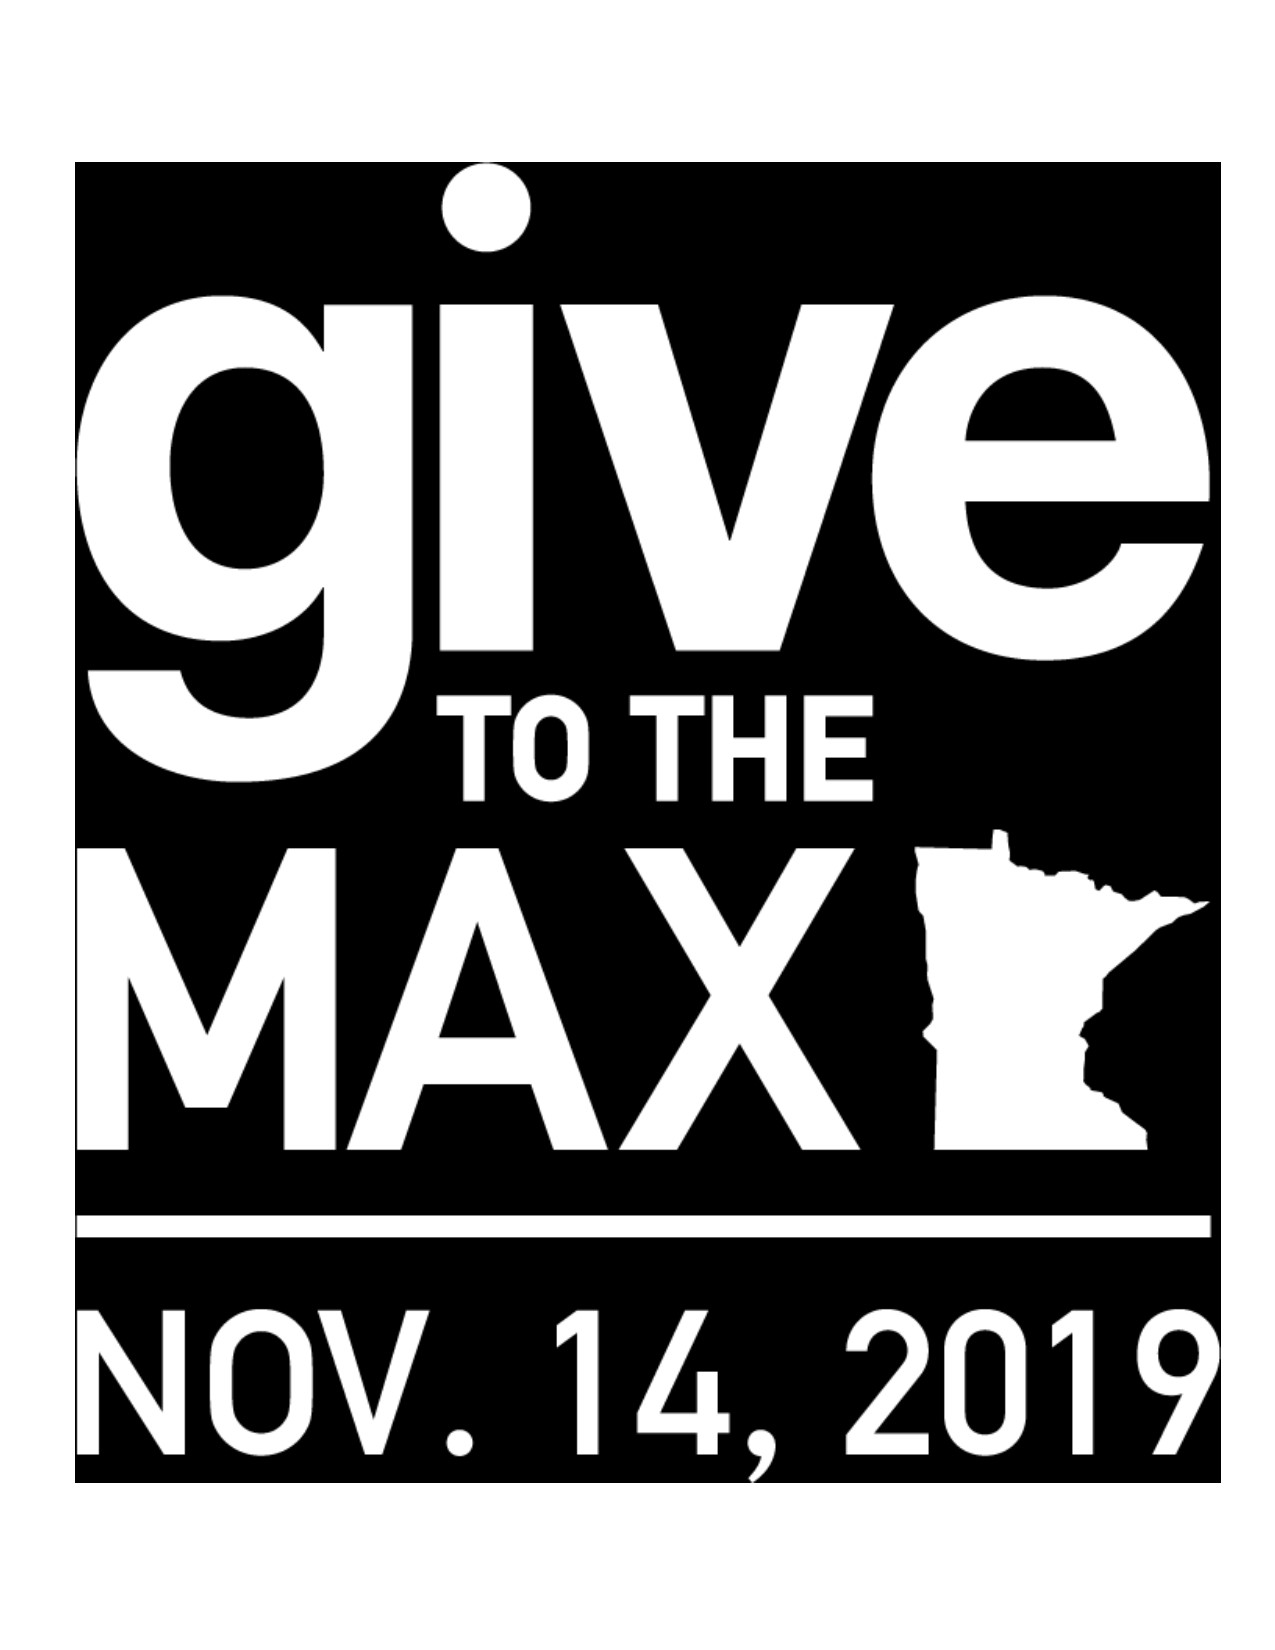 Give to the Max day is November 14, 2019